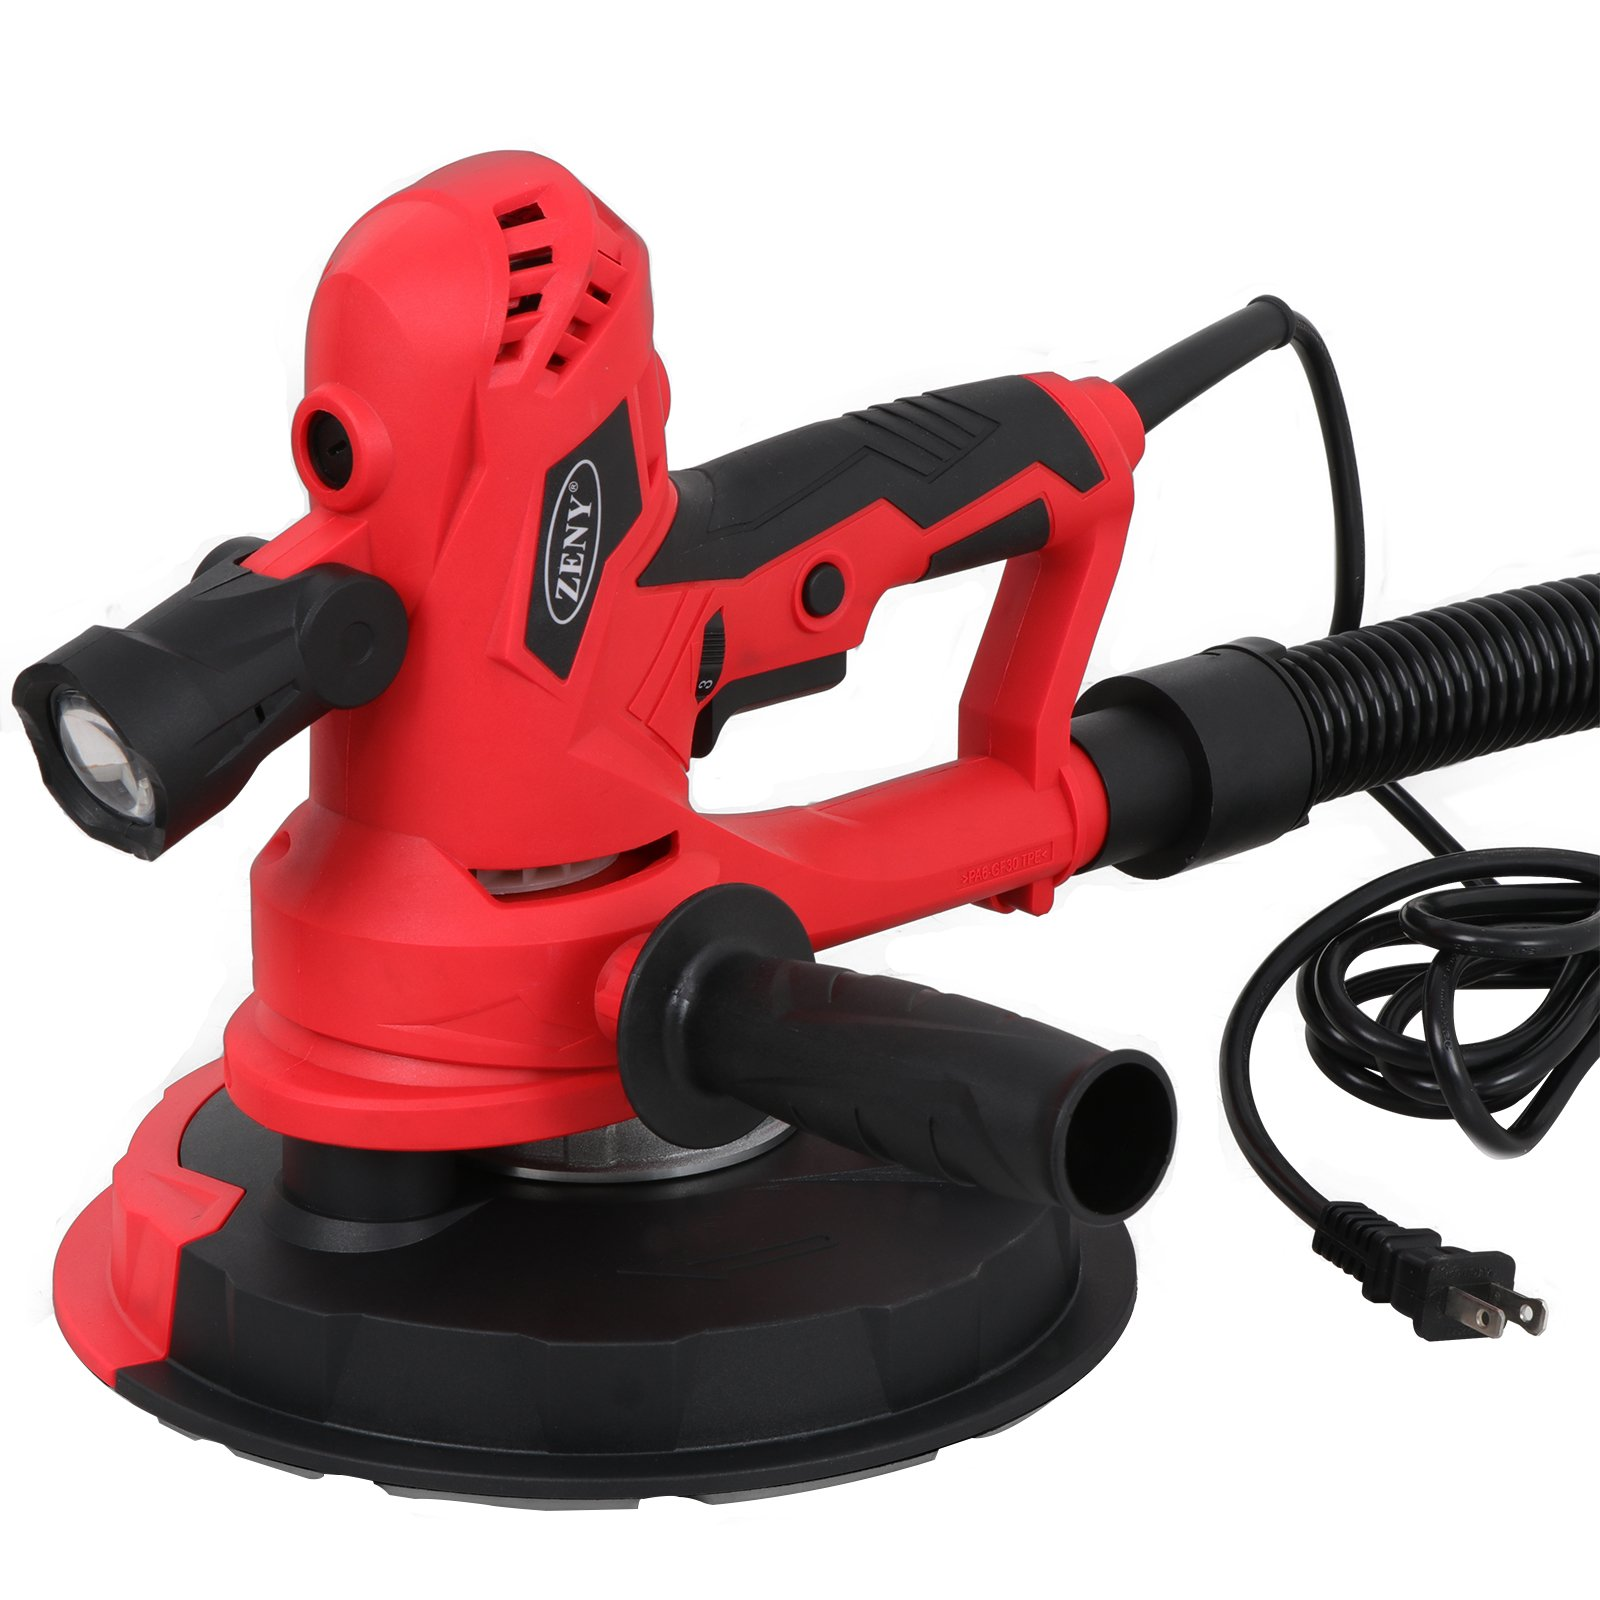 ZENY 750W Electric Hand Held Drywall Sander Variable Speed with Vacuum and LED Light and 6 Sanding Discs and Hose (750W handheld)